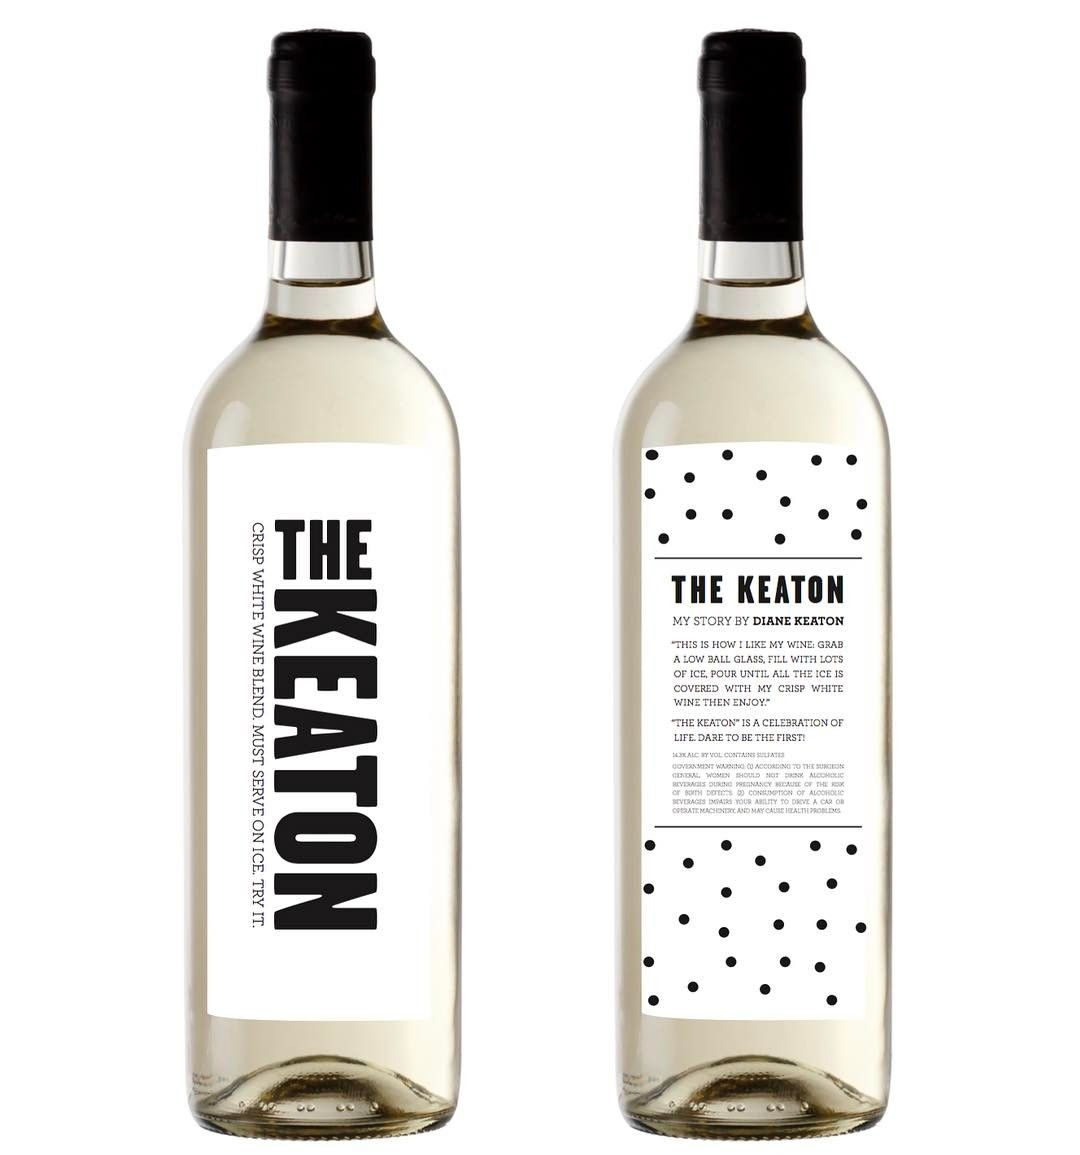 Diane Keaton Loves Putting Ice In Her Red Wine So Much That She Developed Her Own Bottled Wine Line The Keaton In 2015 Now She Wine Unique Wines Wine Bottle